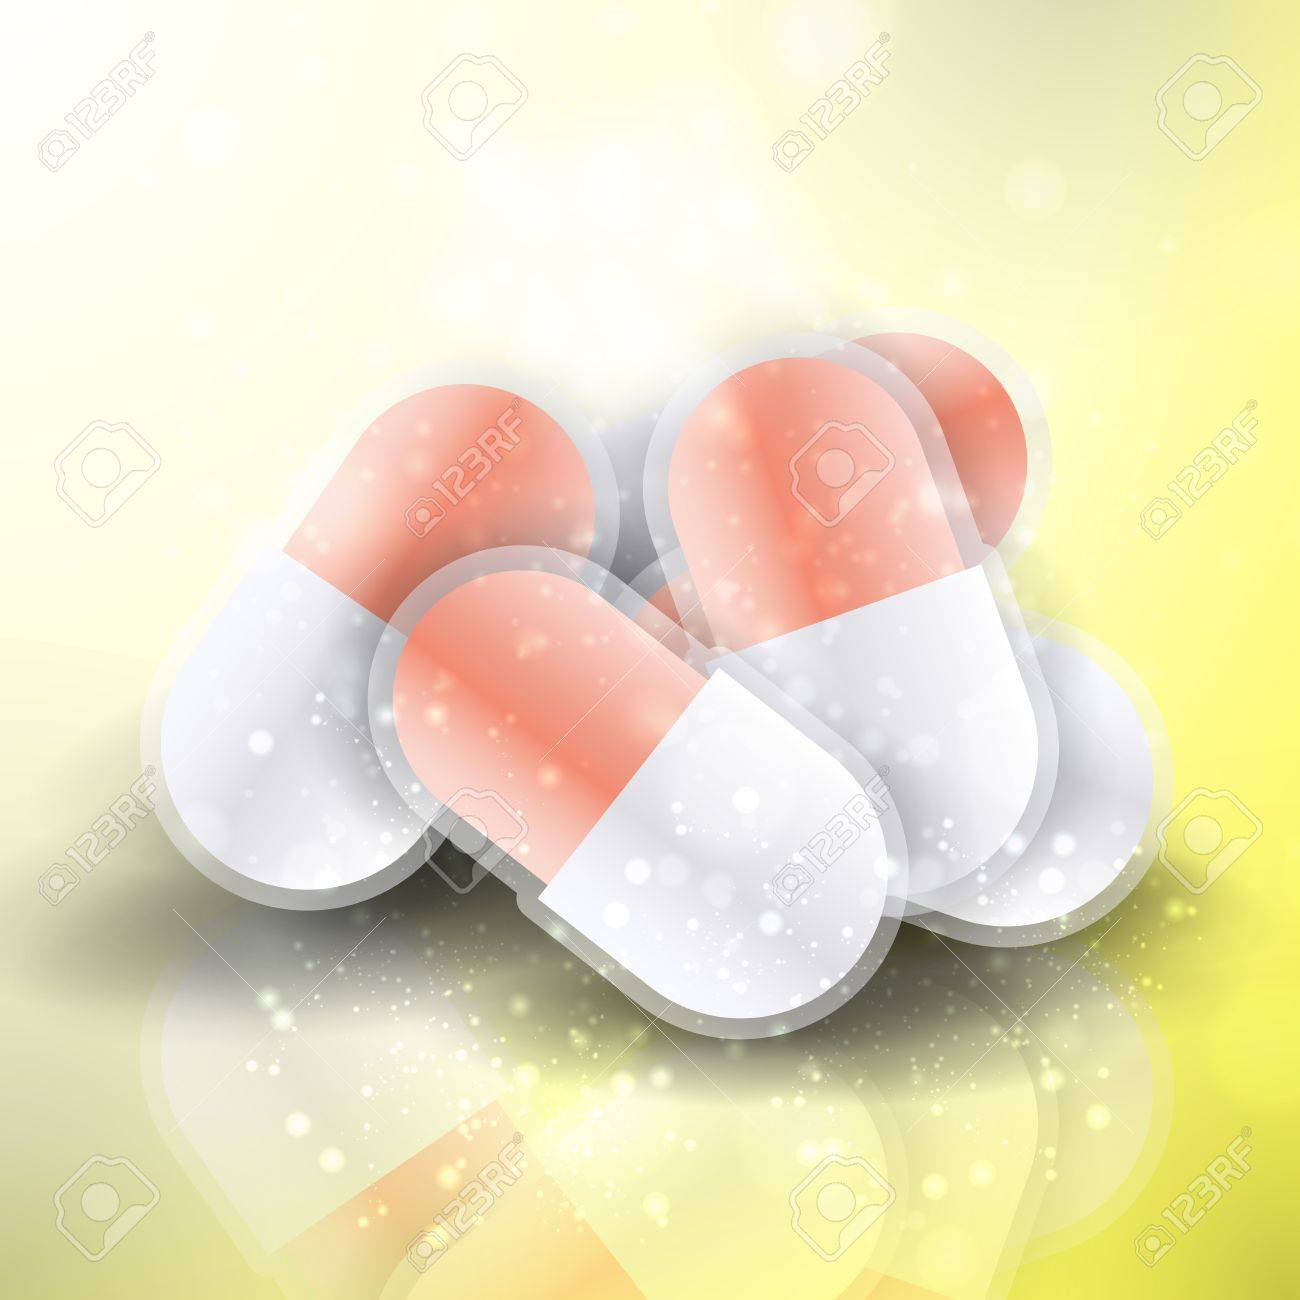 Medical pills - tablets illustration  on reflective surface, isolated objects Stock Illustration - 13404550